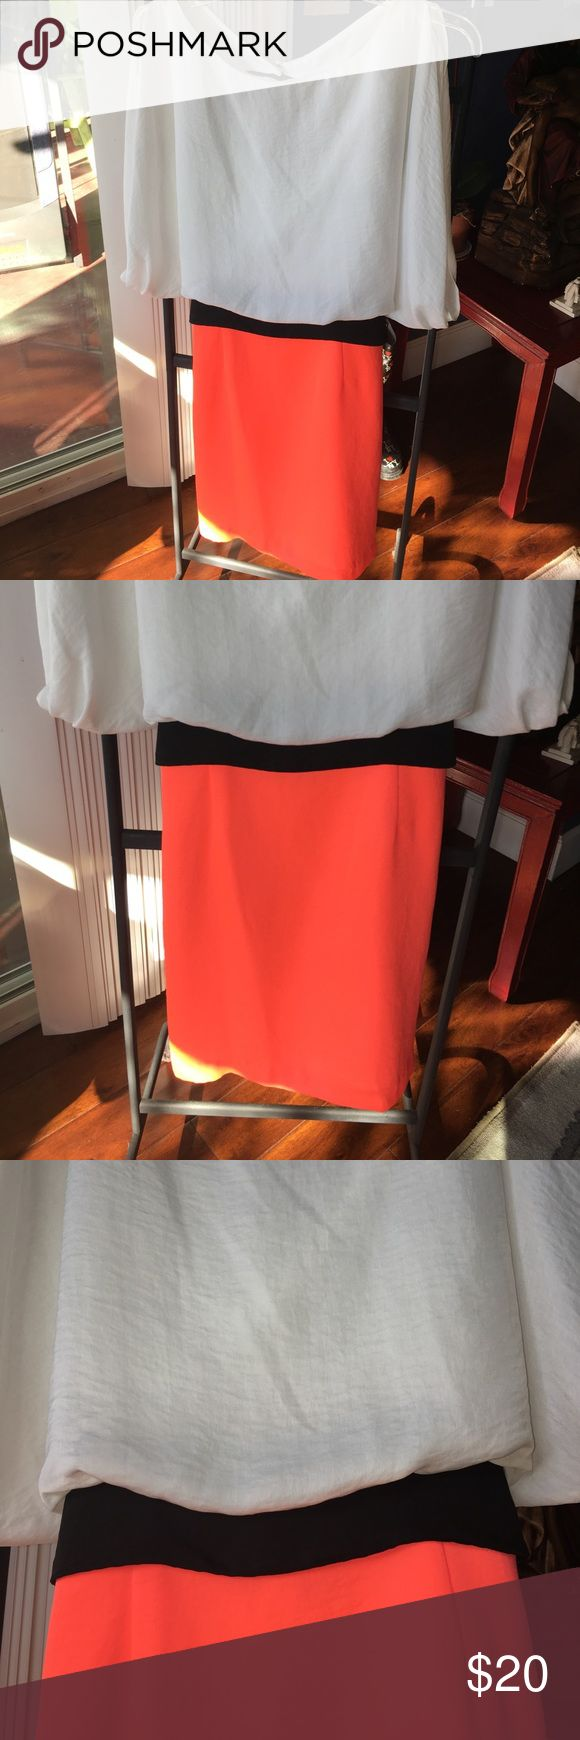 Brand New Two Tone Color Dress with Belt Brand New never worn Two Tone color dress with built in belt! Super cute and sophisticated. Sleeves are capped, bottom part is like a pink coral, cute cutout detail on the back!! Size is Junior but can definitely fit anyone. Size says 13/14 B. Smart Dresses Mini